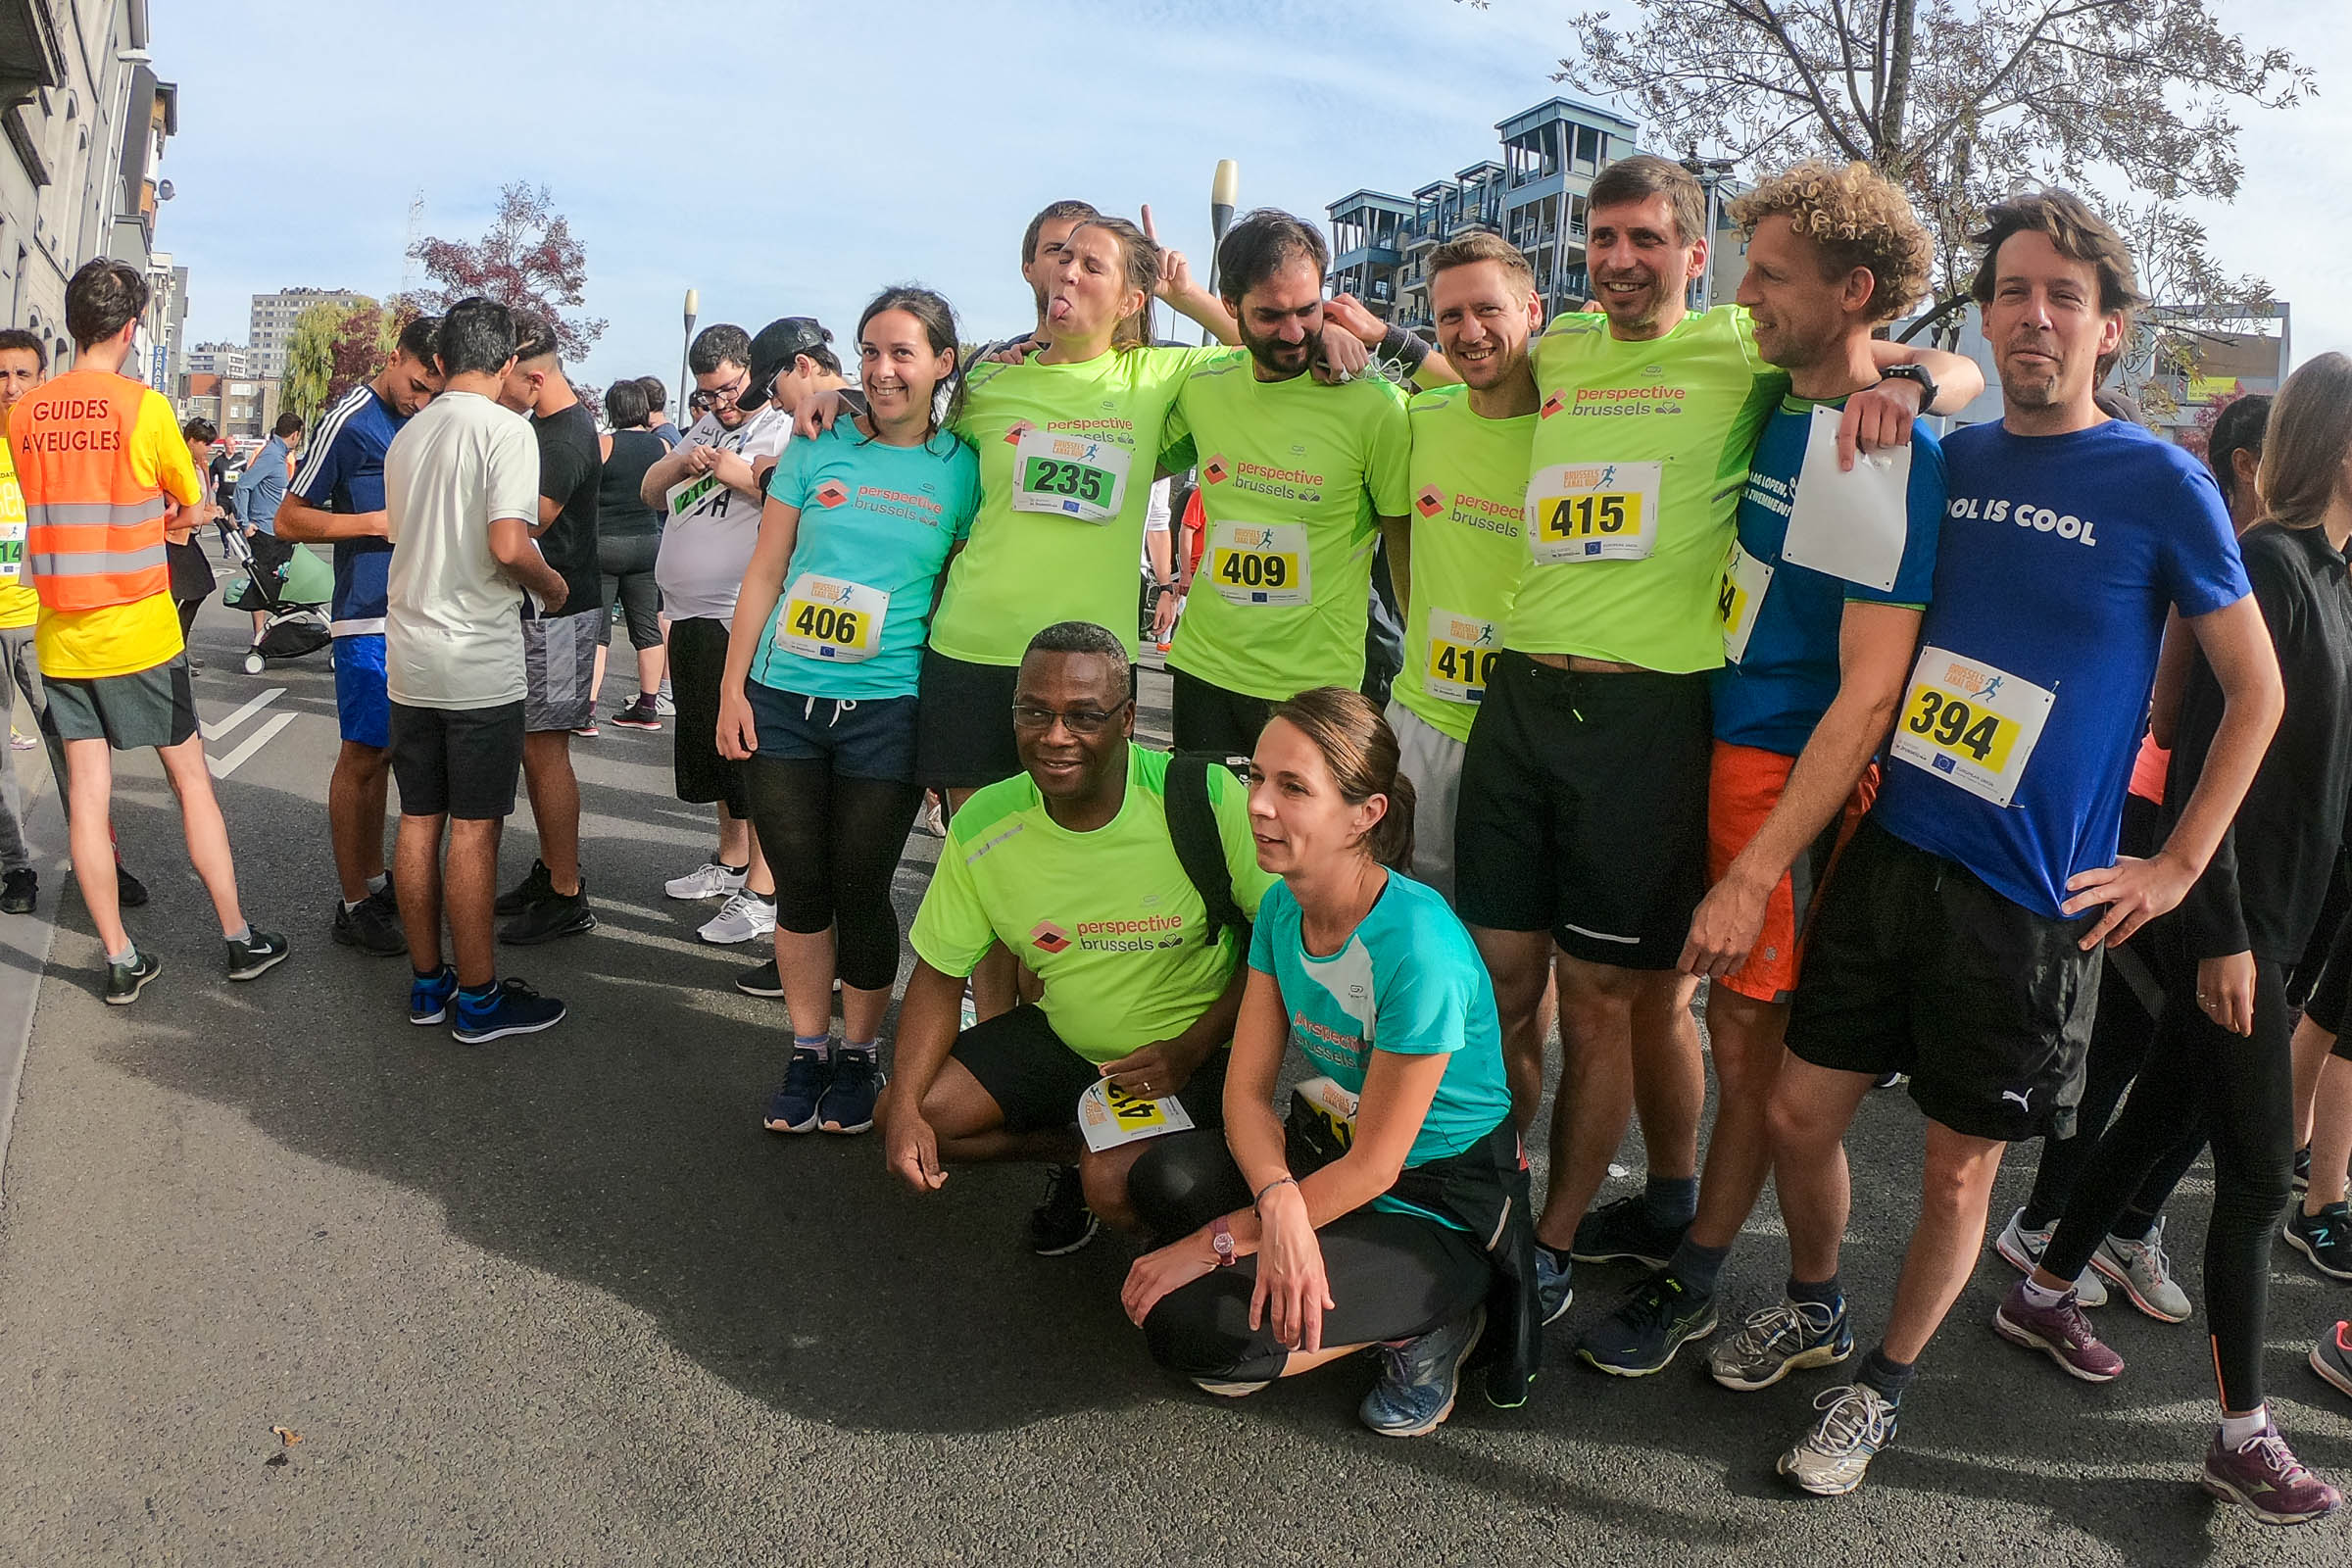 PIC_EVENT_20181020_Brussels-Canal-Run_GOPRO_001.jpg